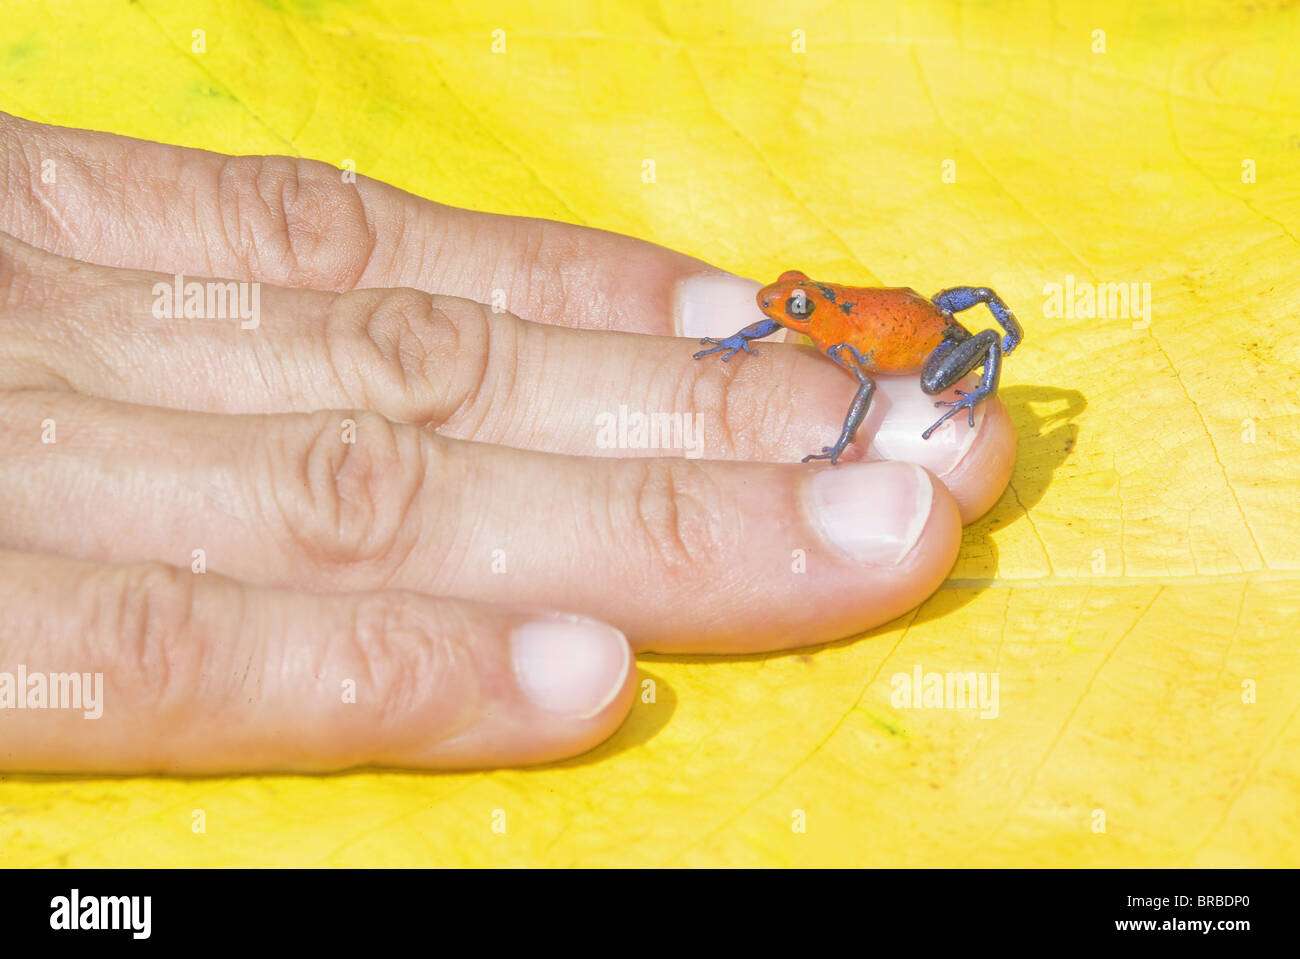 Blue jeans dart frog (Dendrobates pumilio) on human hand, Costa Rica, Central America - Stock Image